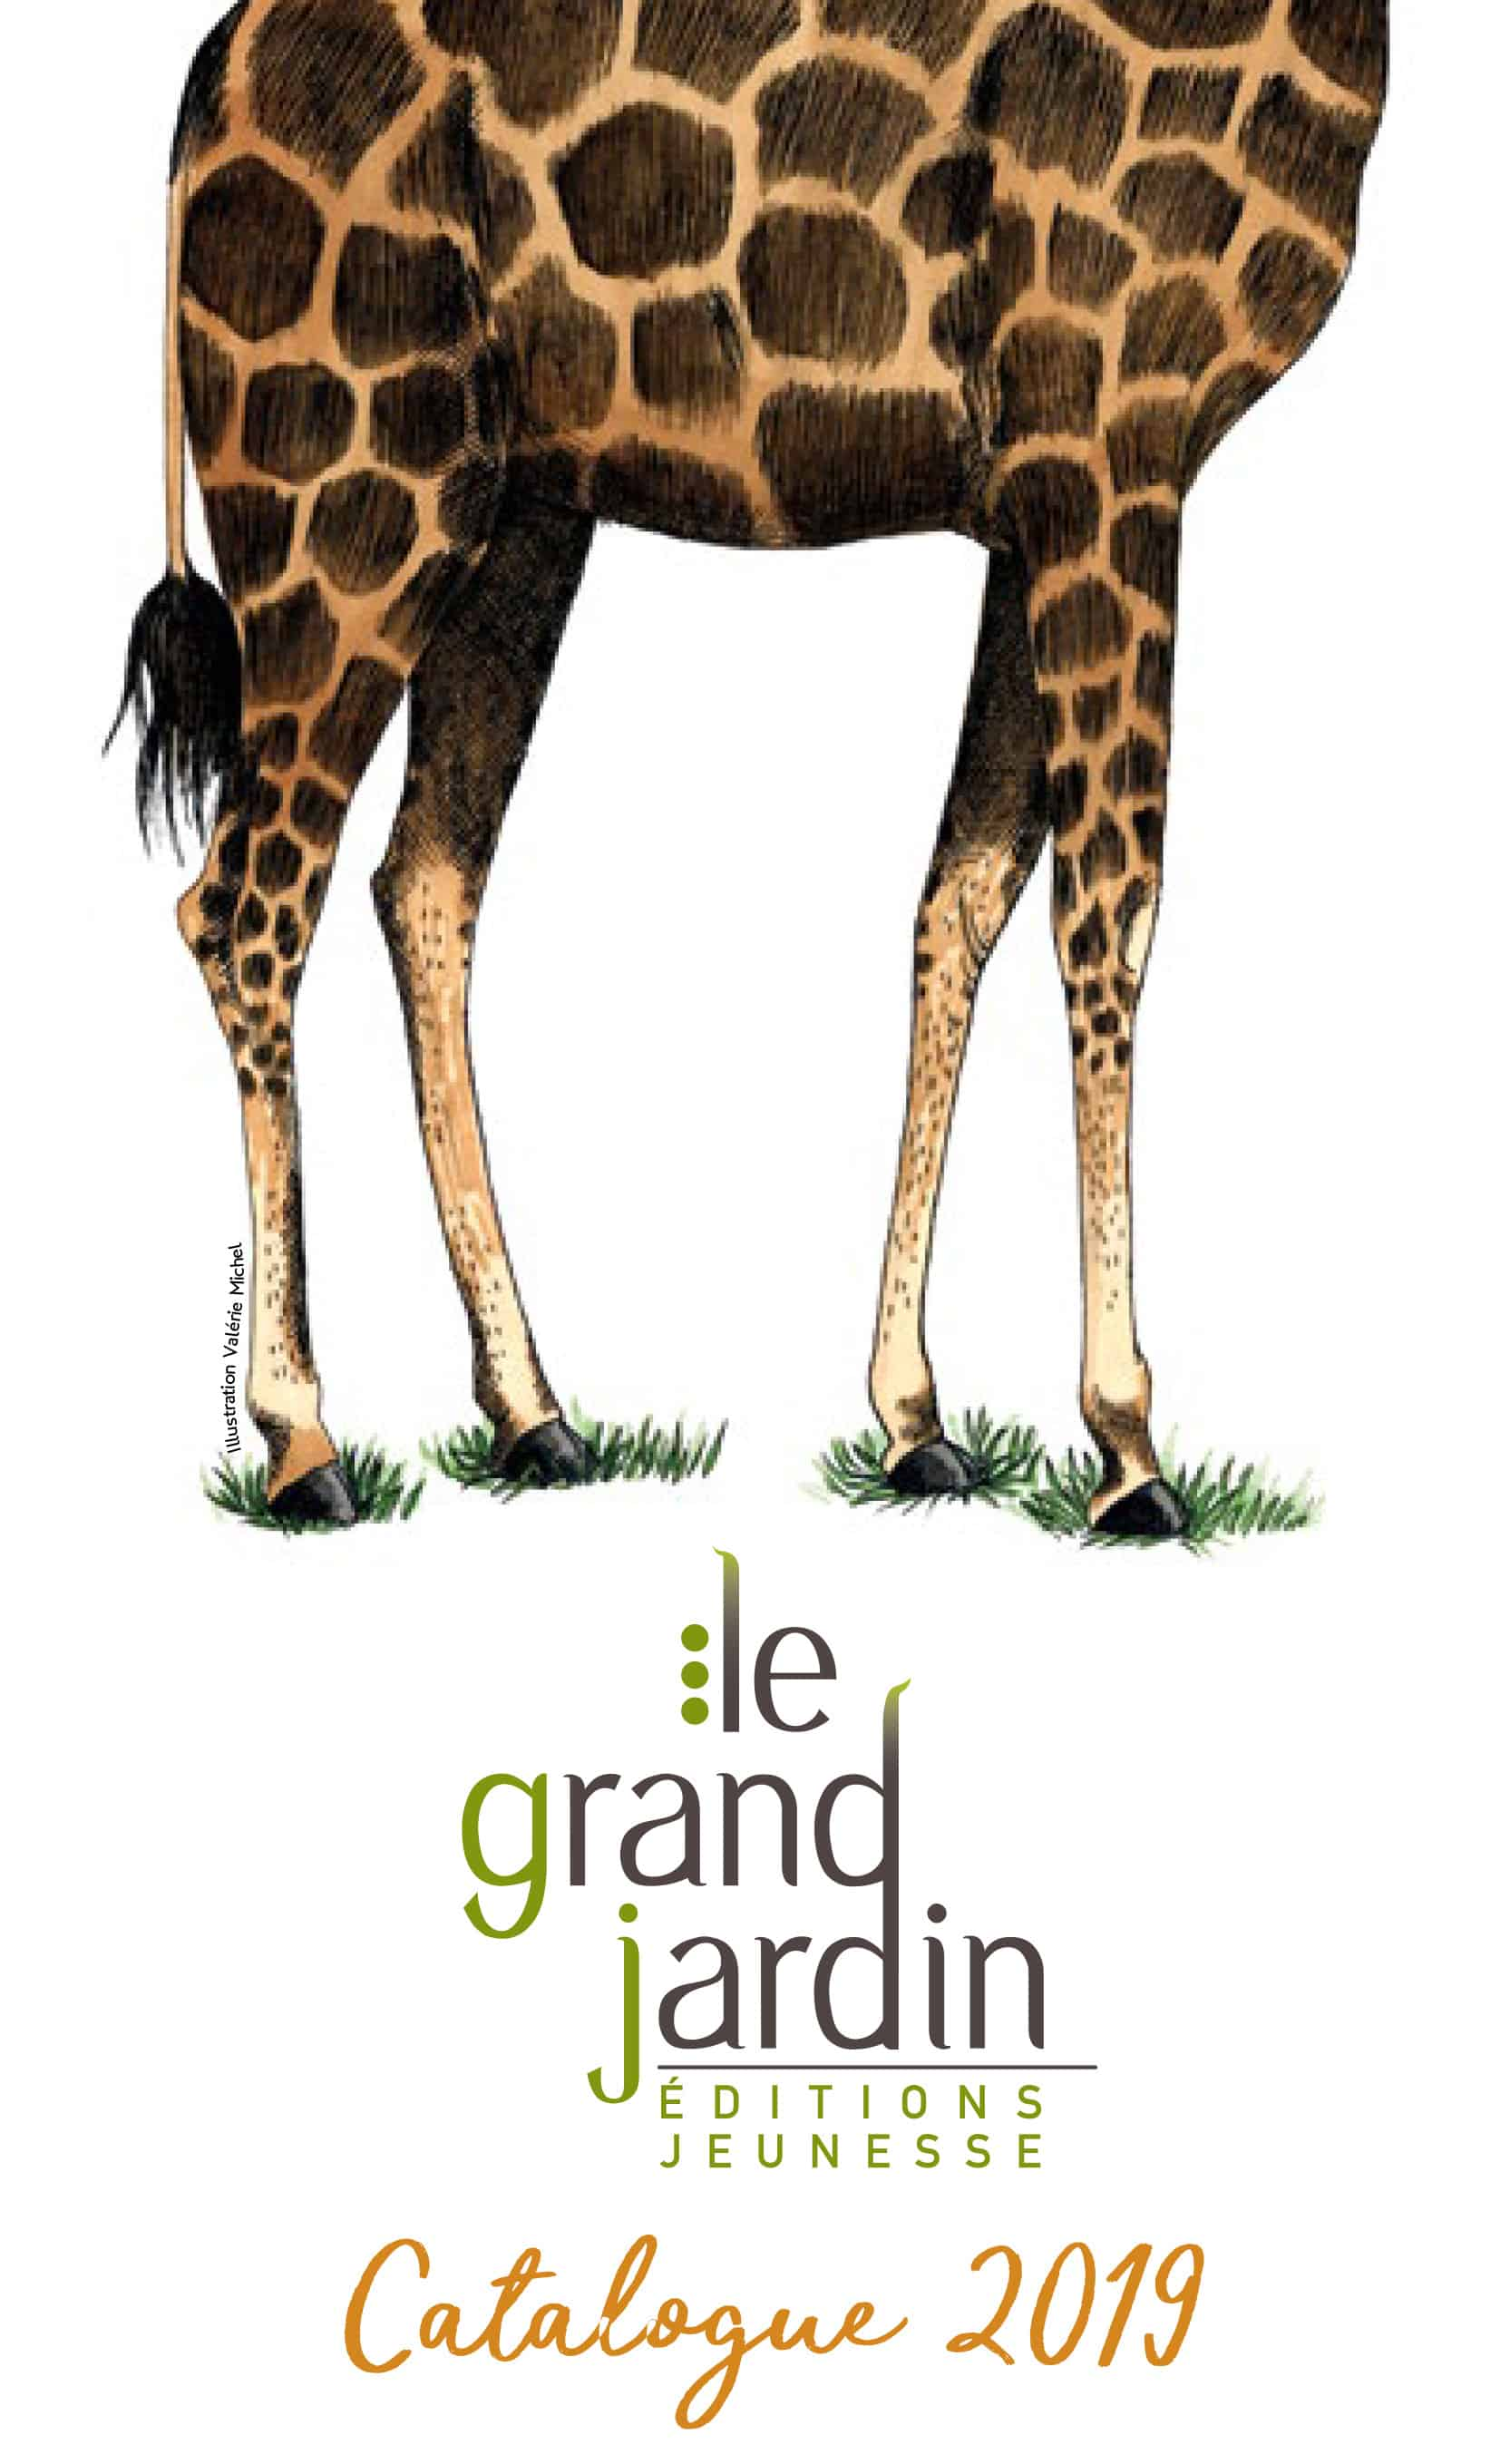 catalogue LeGrandJardin 201903 COUV